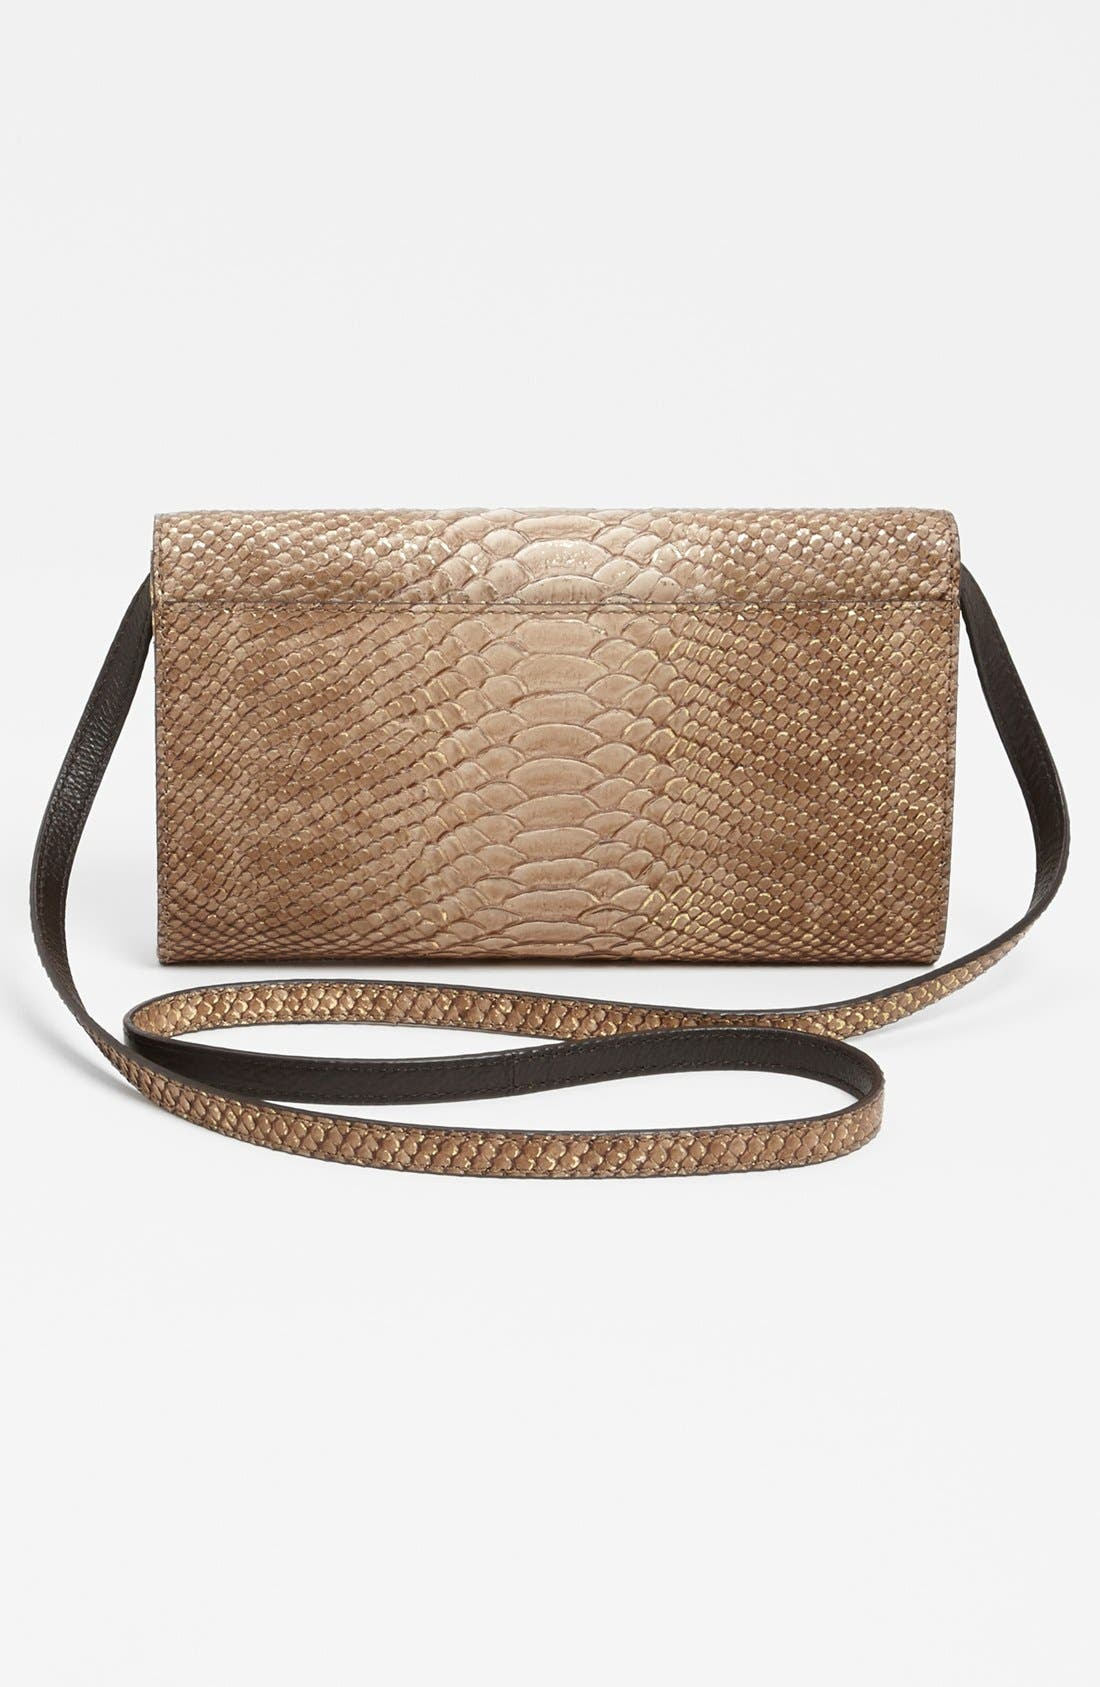 Alternate Image 4  - Michael Kors 'Gia' Python Embossed Clutch